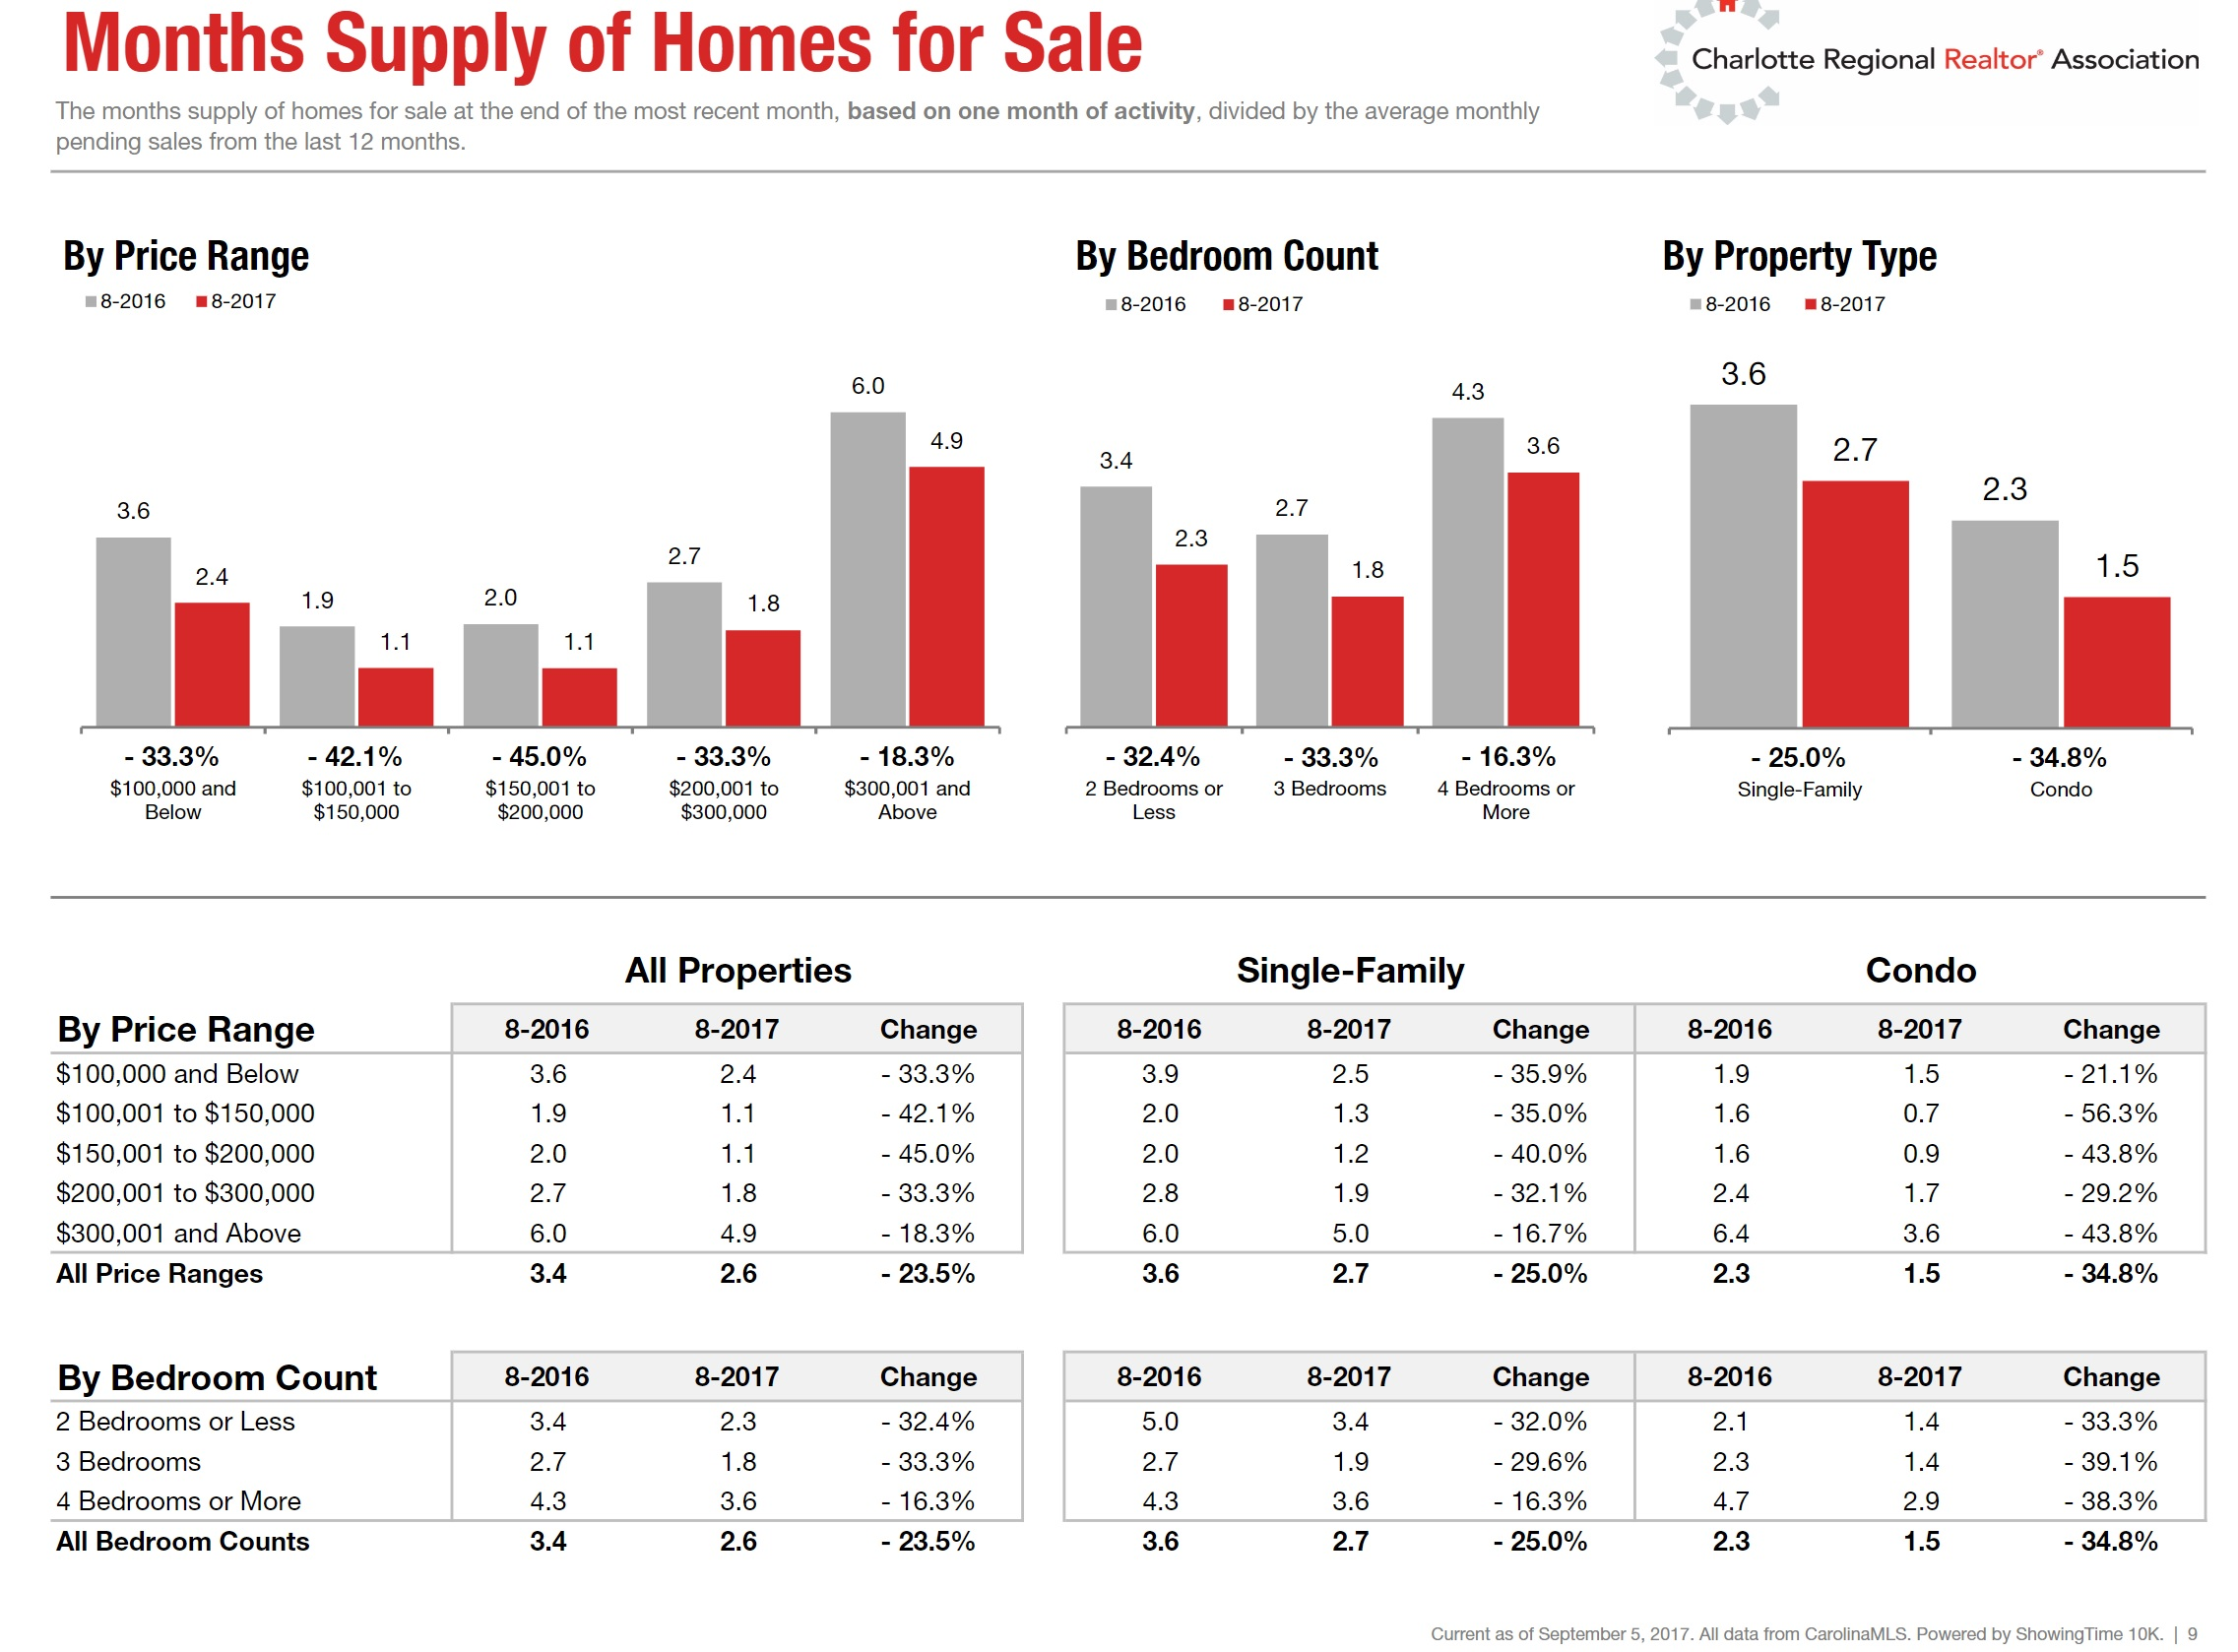 Charlotte, NC Region Months Supply of Homes: August 2017